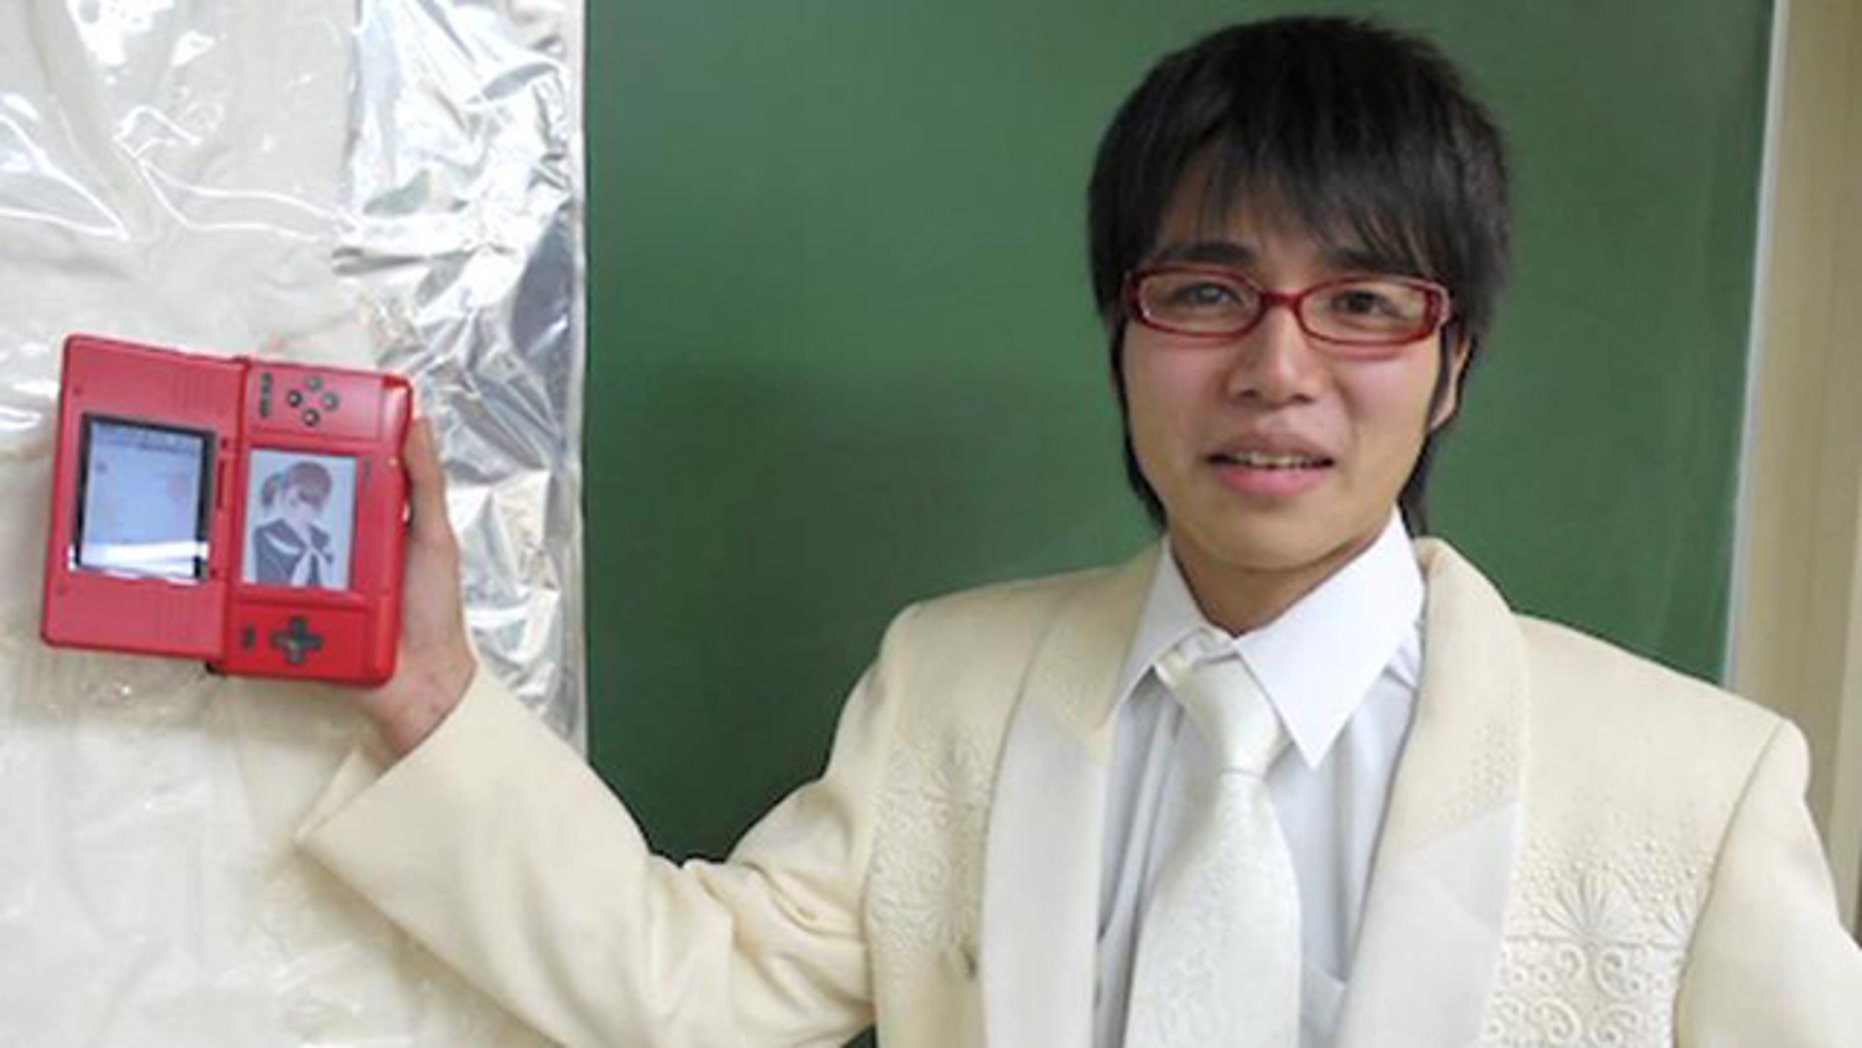 In this screen from a YouTube video of the wedding ceremony, gamer Sal9000 shows off the love of his life -- Nene Anegasaki, the star of dating simulation game Love Plus.